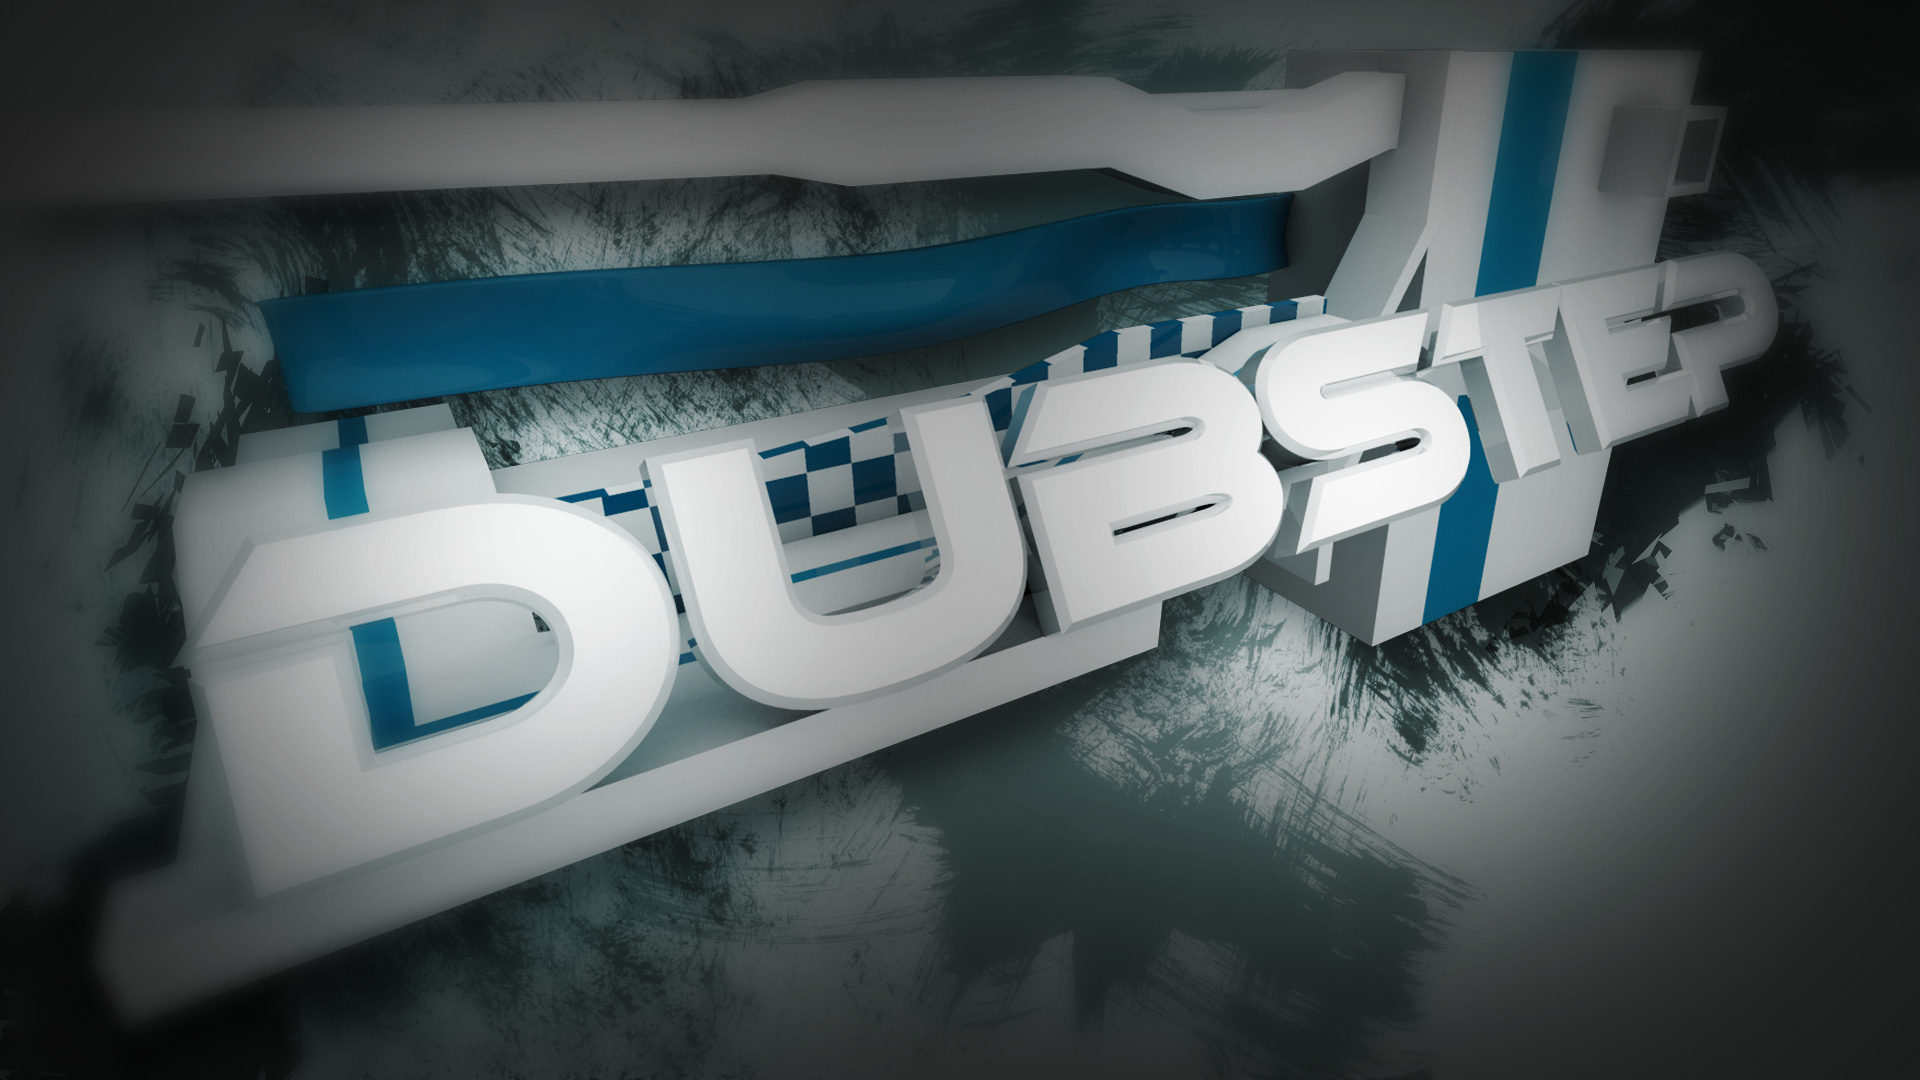 abstract dubstep wallpaper 1080p - photo #23